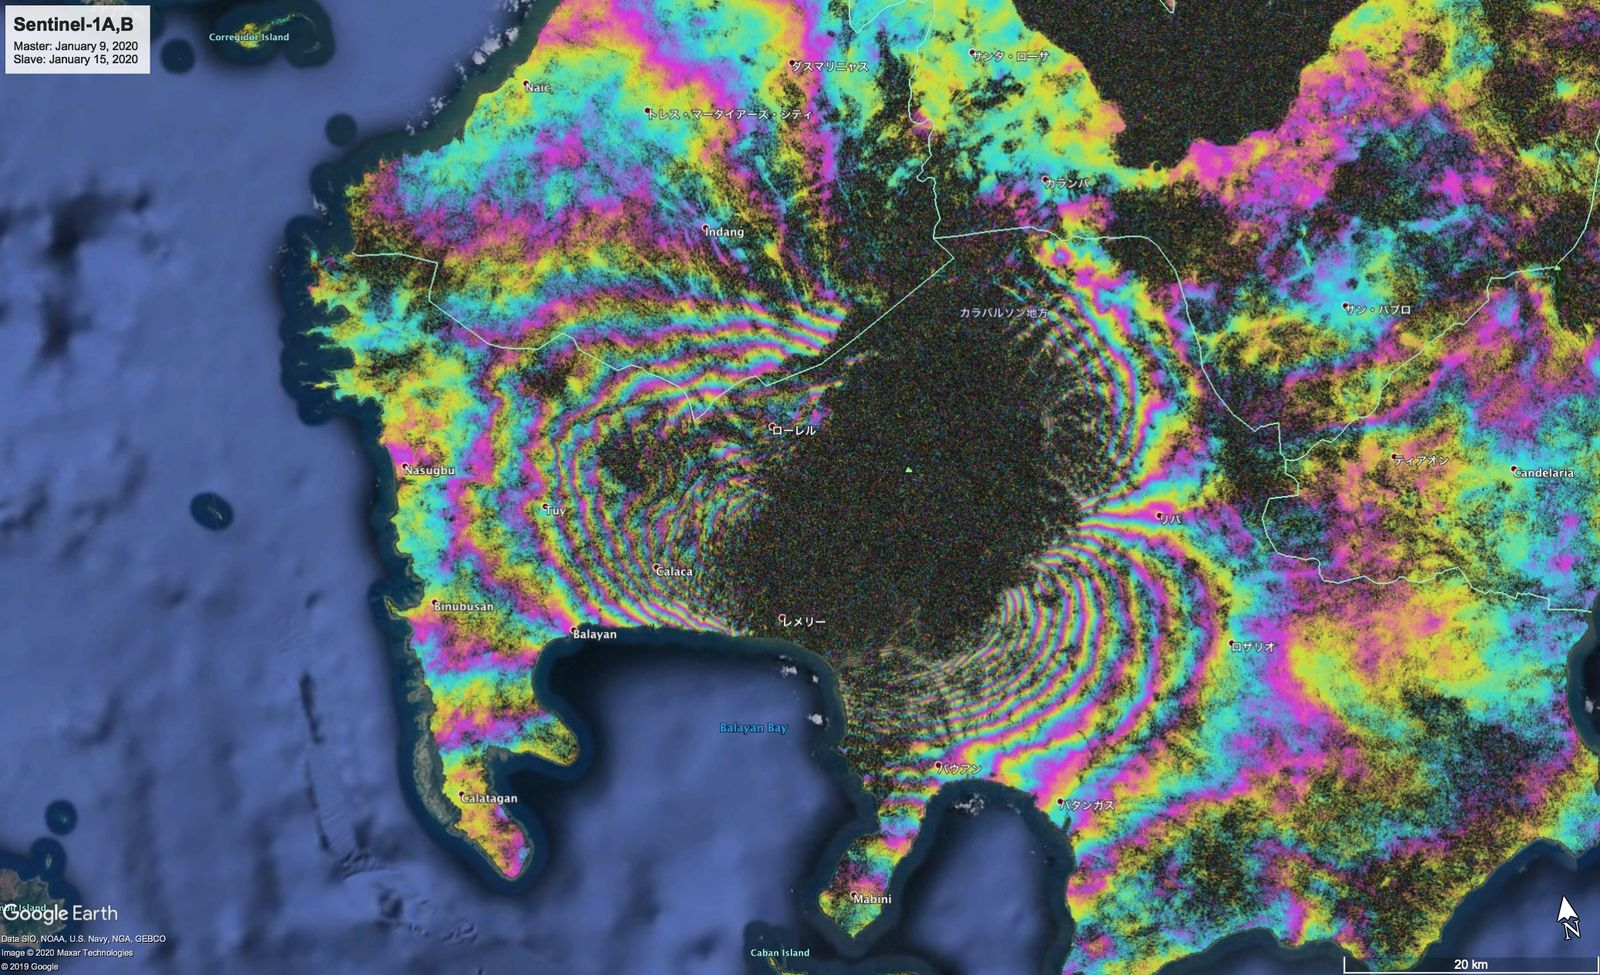 Taal - Sentinel radar interferometry -1 A, B (between January 9 and January 15, 2020) which testifies to the significant deformation of the surroundings and the volcano - the black zone, covered by ash, provided no measurement - doc. Copernicus